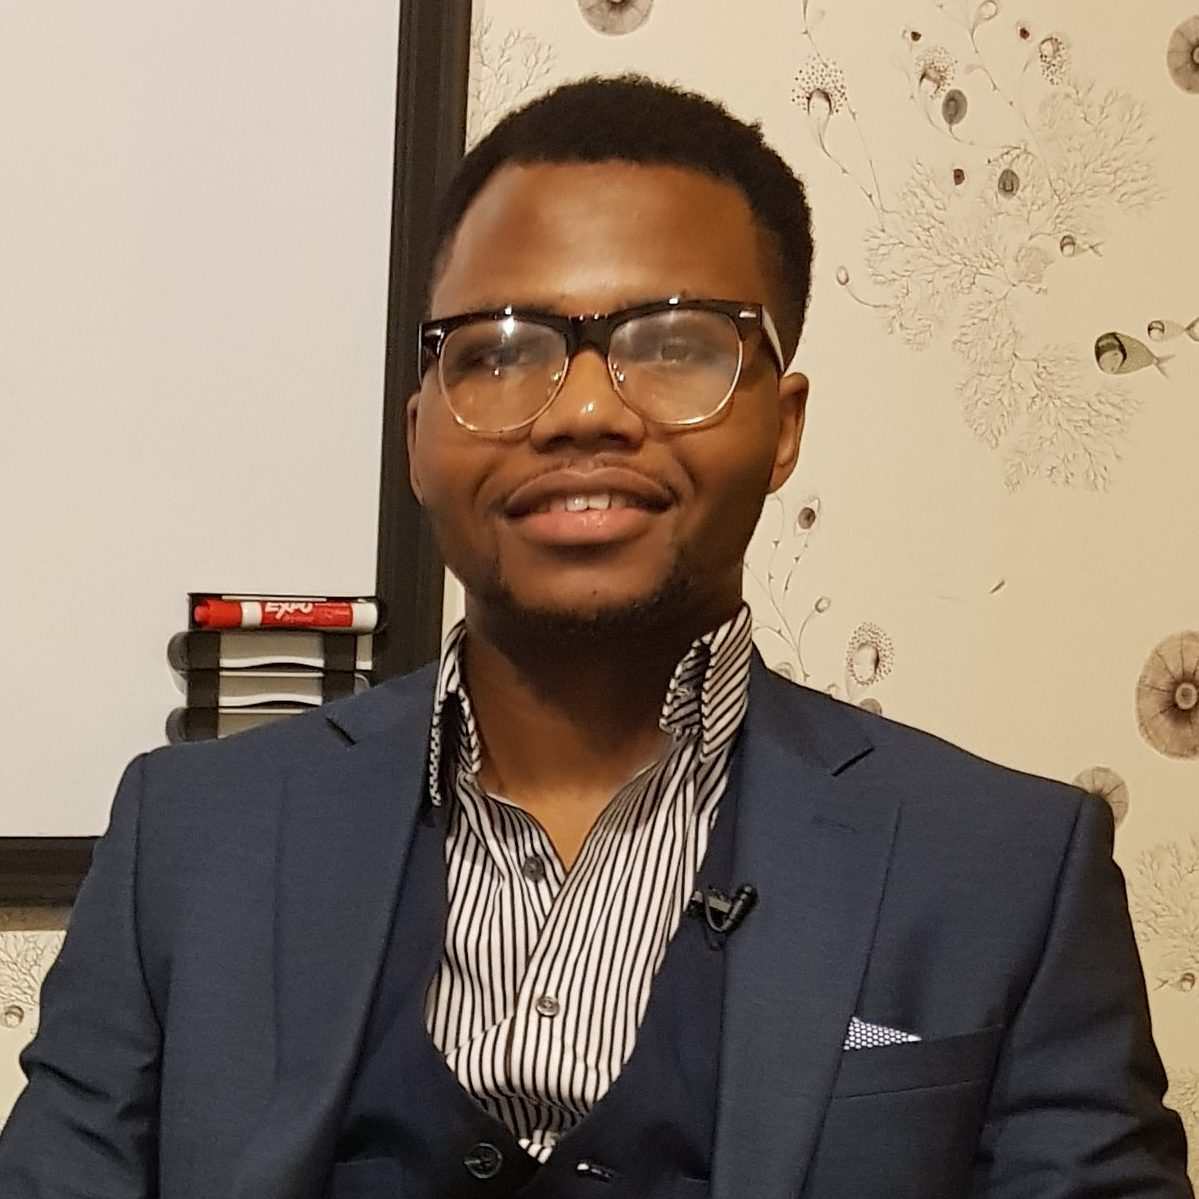 Seun Ajanwachuku - 2019 Top SEO Consultants in the U.S.